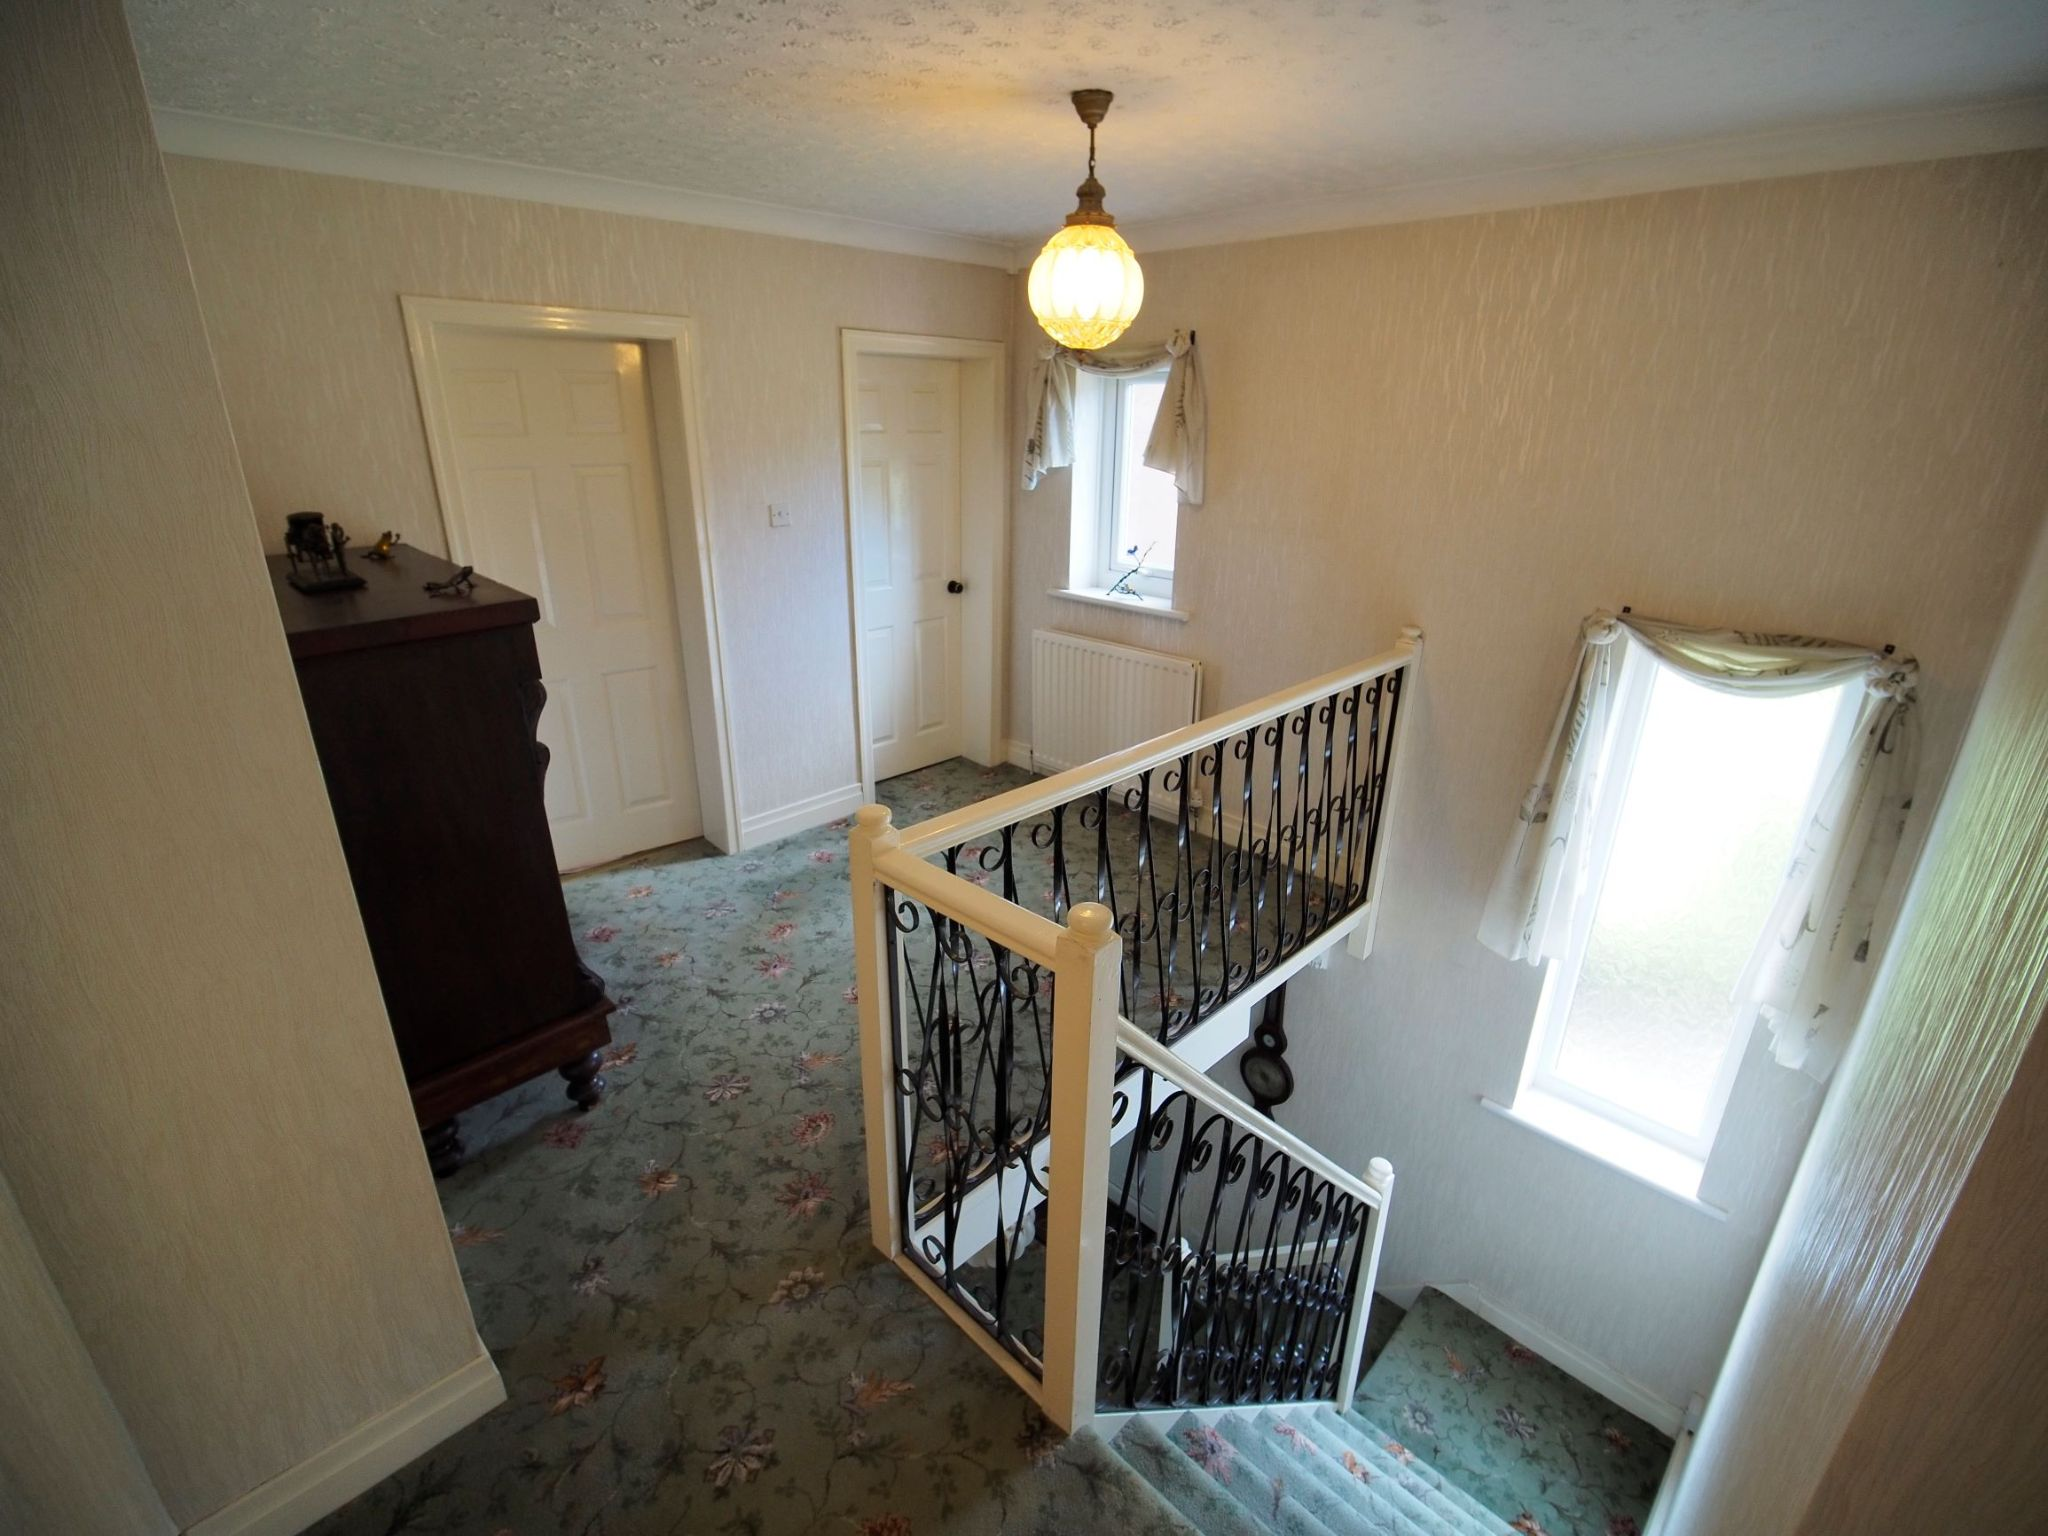 4 bedroom detached house For Sale in Willington - Upstairs Landing.